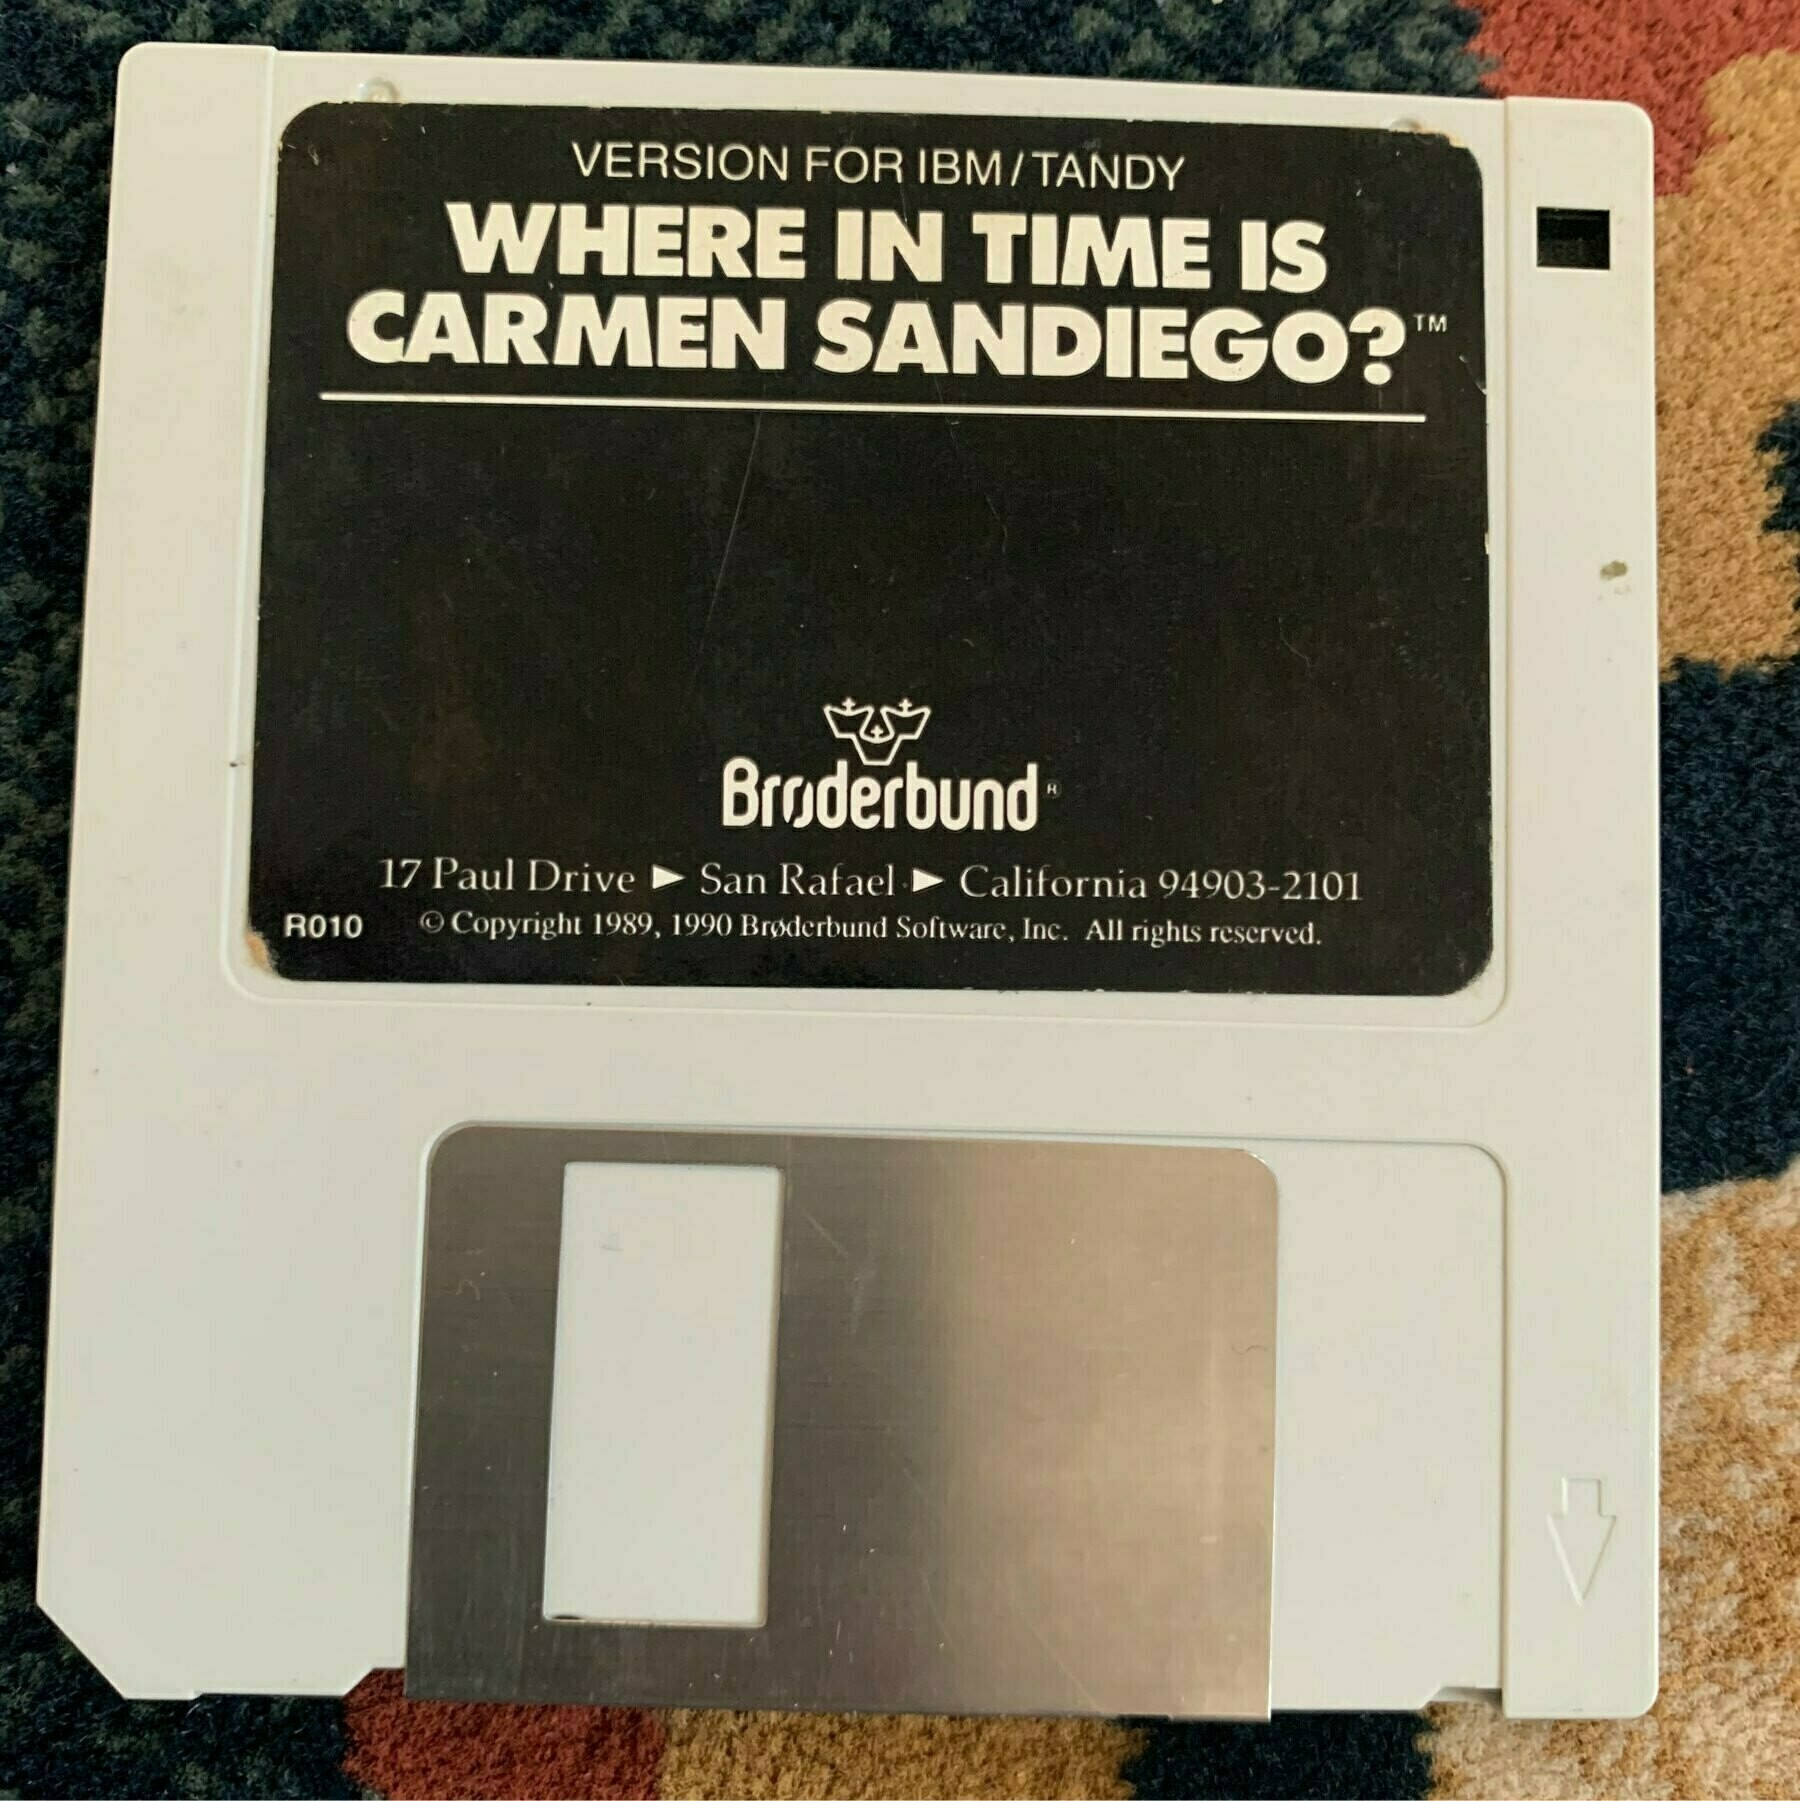 The floppy disk for Where in Time is Carmen Sandiego